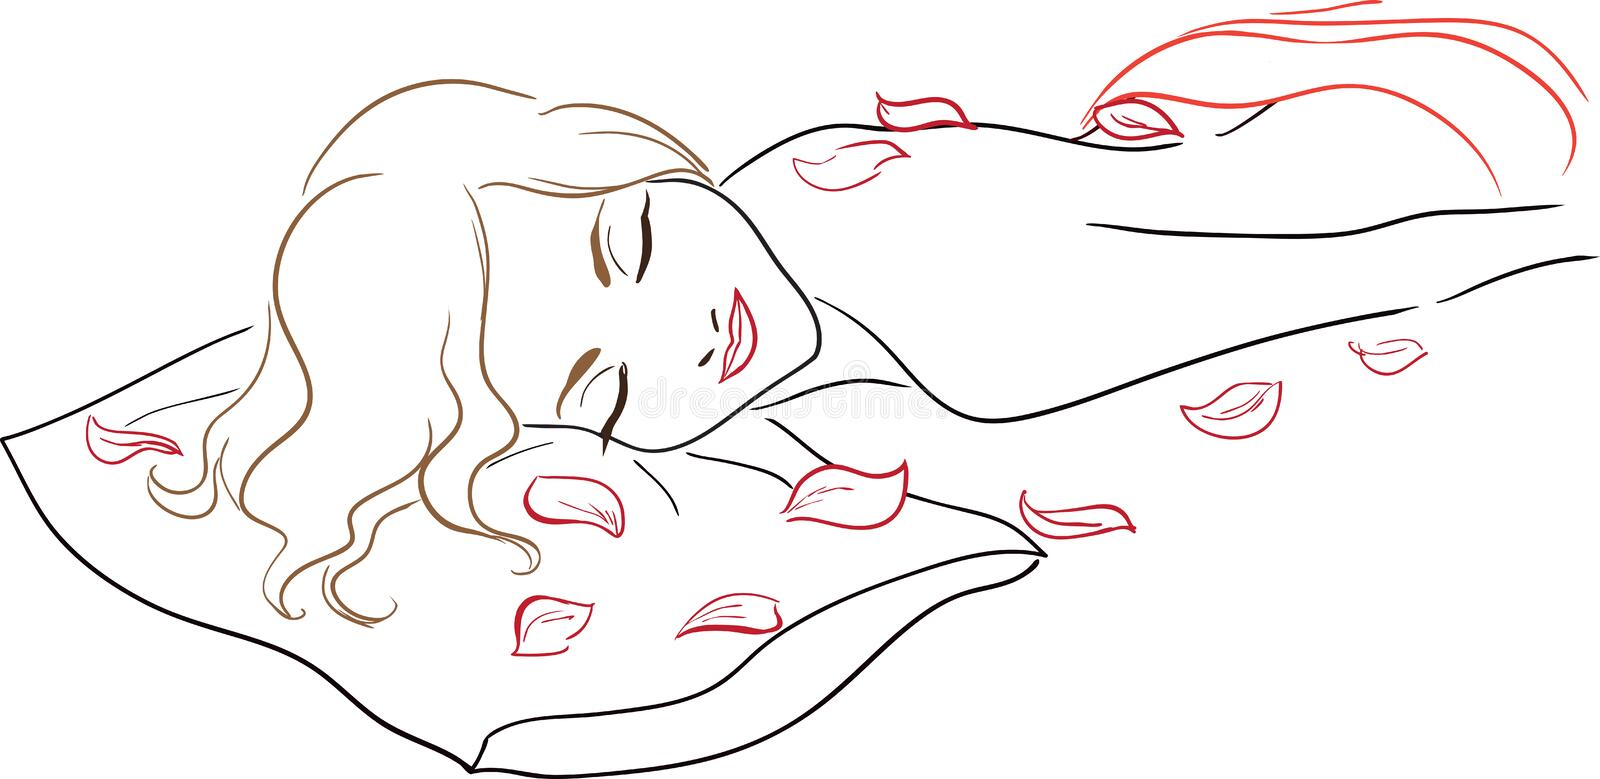 Series Spa Salon - Massage, woman with rose petals stock illustration